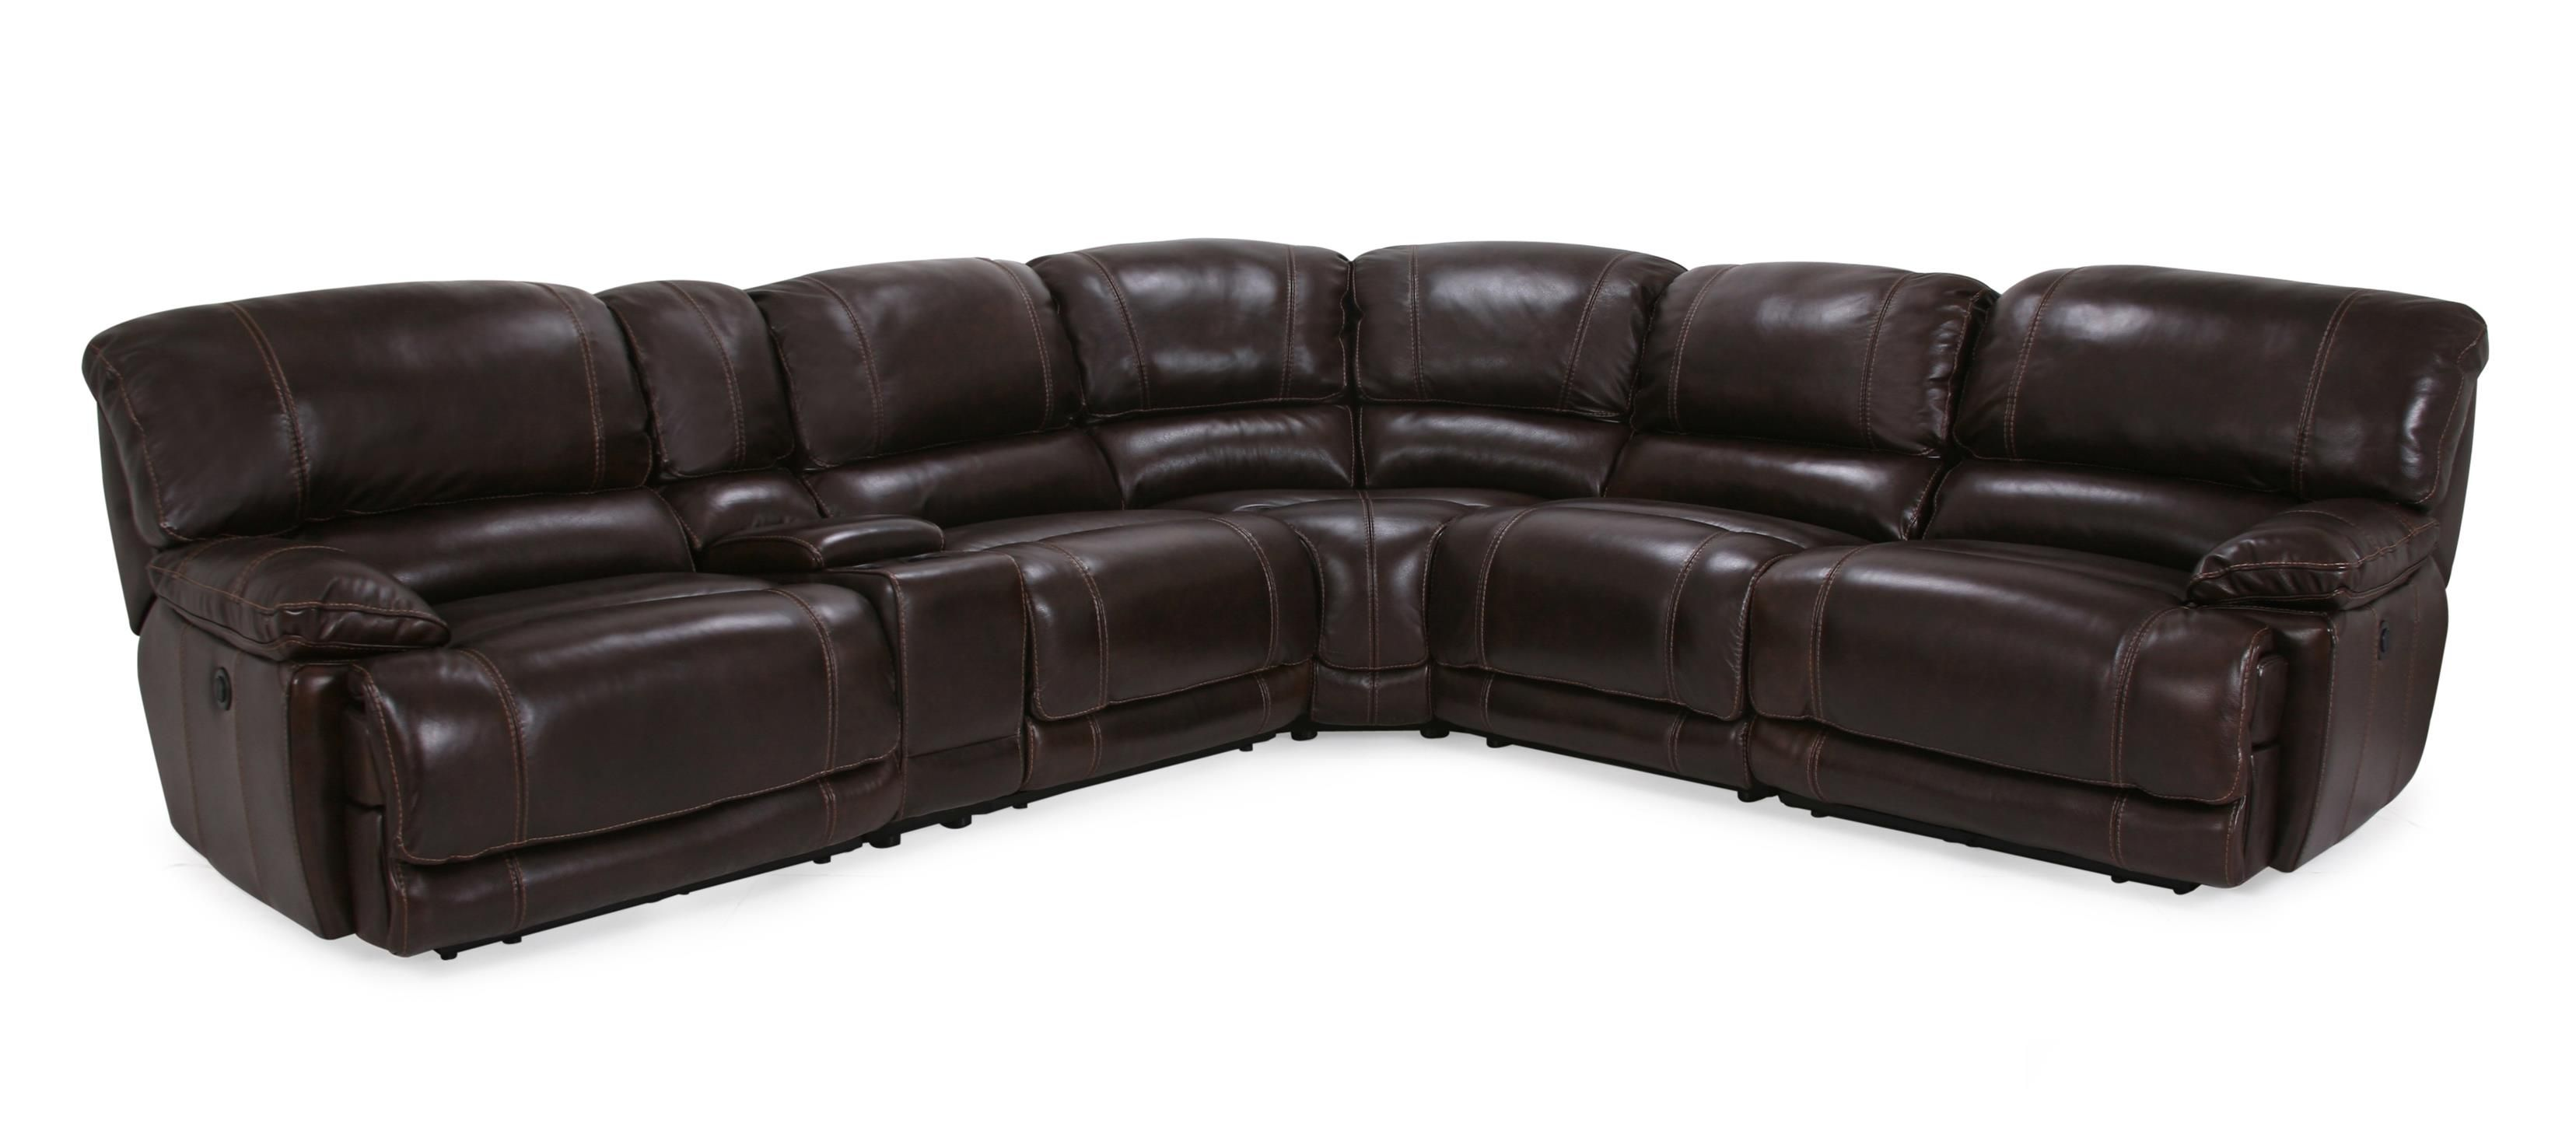 Manwah Sofa Factory How To Get Rid Of Bed Bugs In Leather X8698m Casual Reclining Sectional By Cheers Home Decor